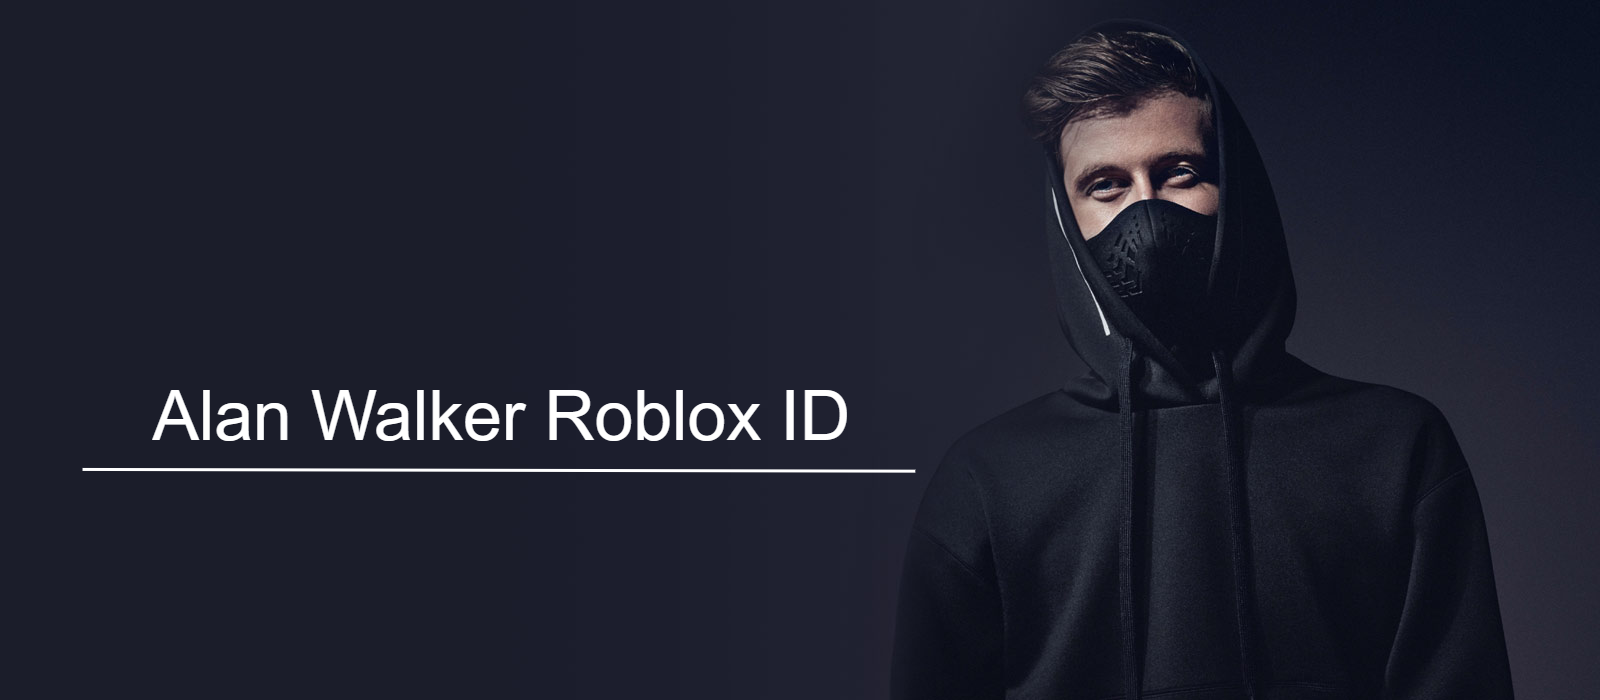 Id Songs For Roblox List Alan Walker Roblox Id The Roblox Has Been Providing Variety By James Frye Medium